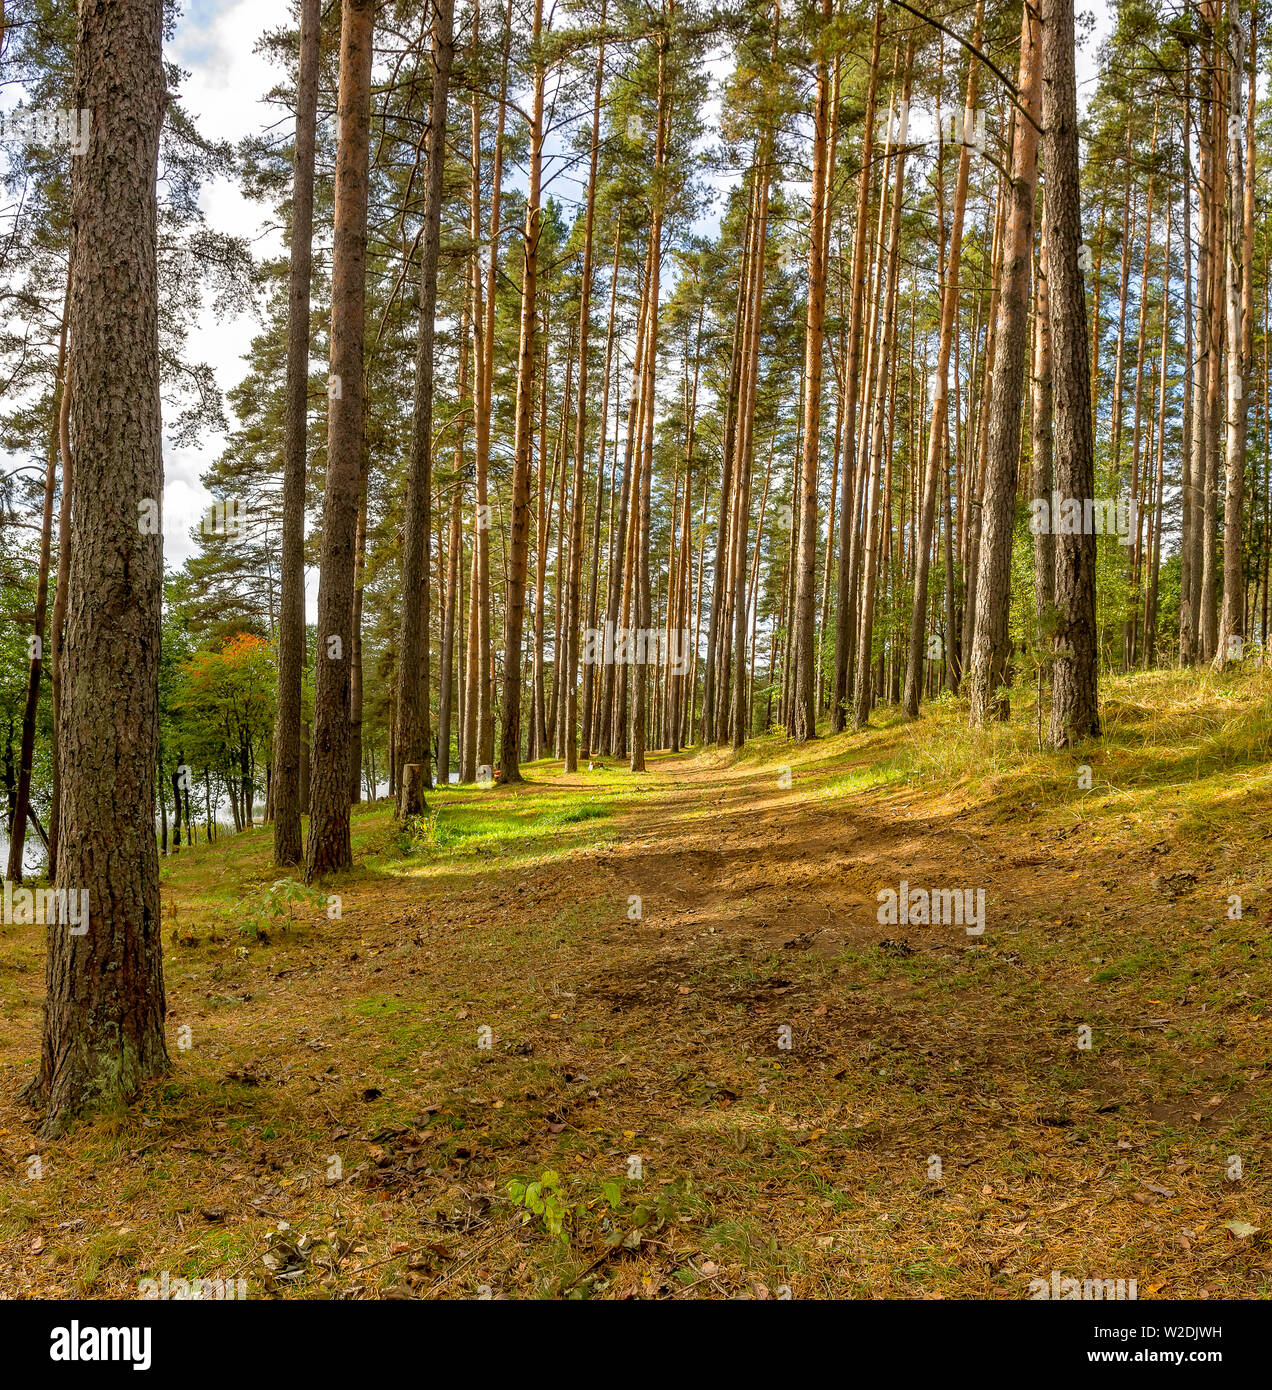 Panorama of coniferous autumn forest with yellow leaves on small trees. Stock Photo